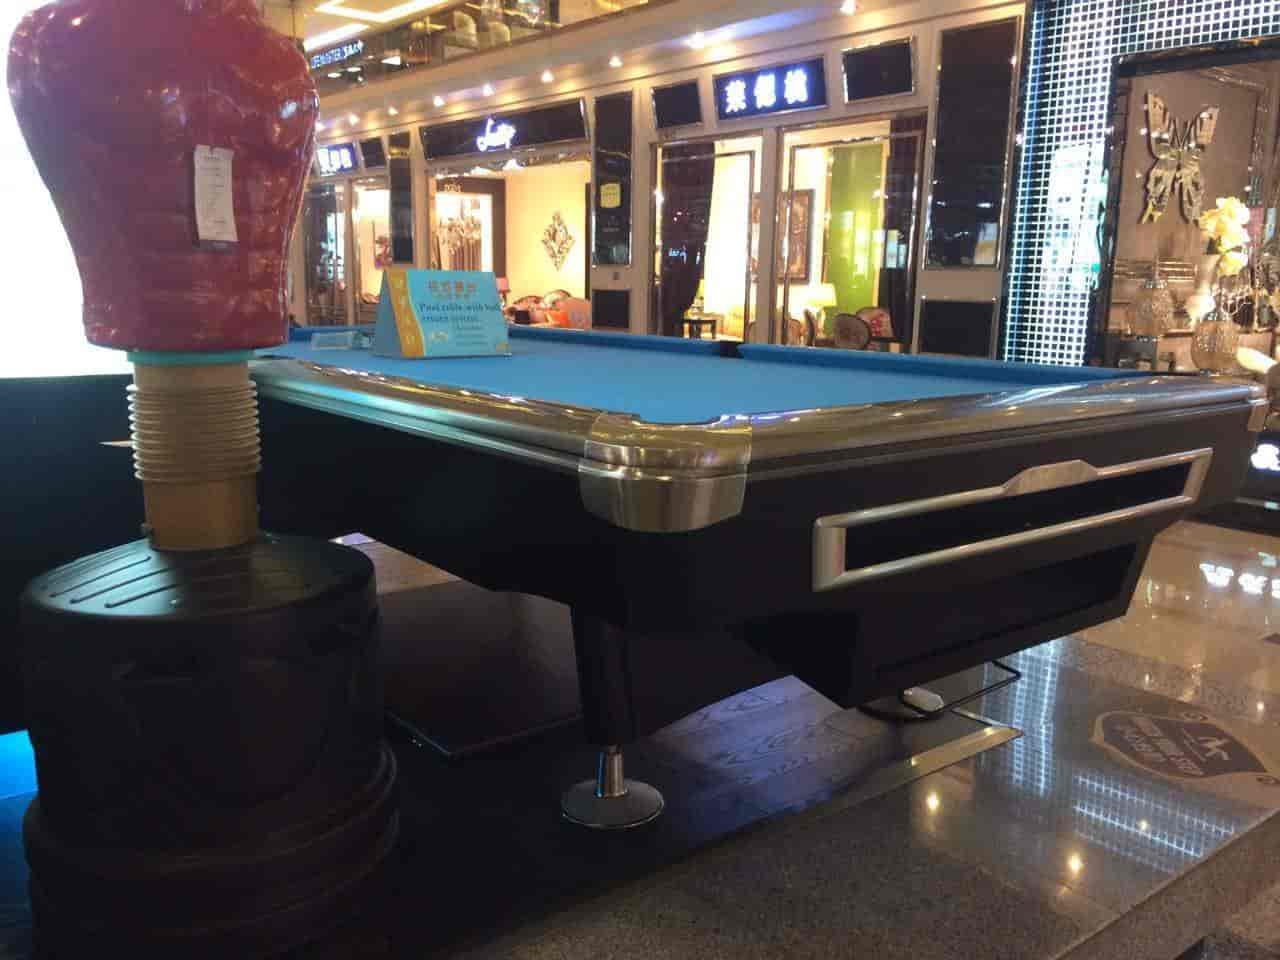 Pool Table Repair Near Me Images Pool Table Repair - Pool table repair service near me